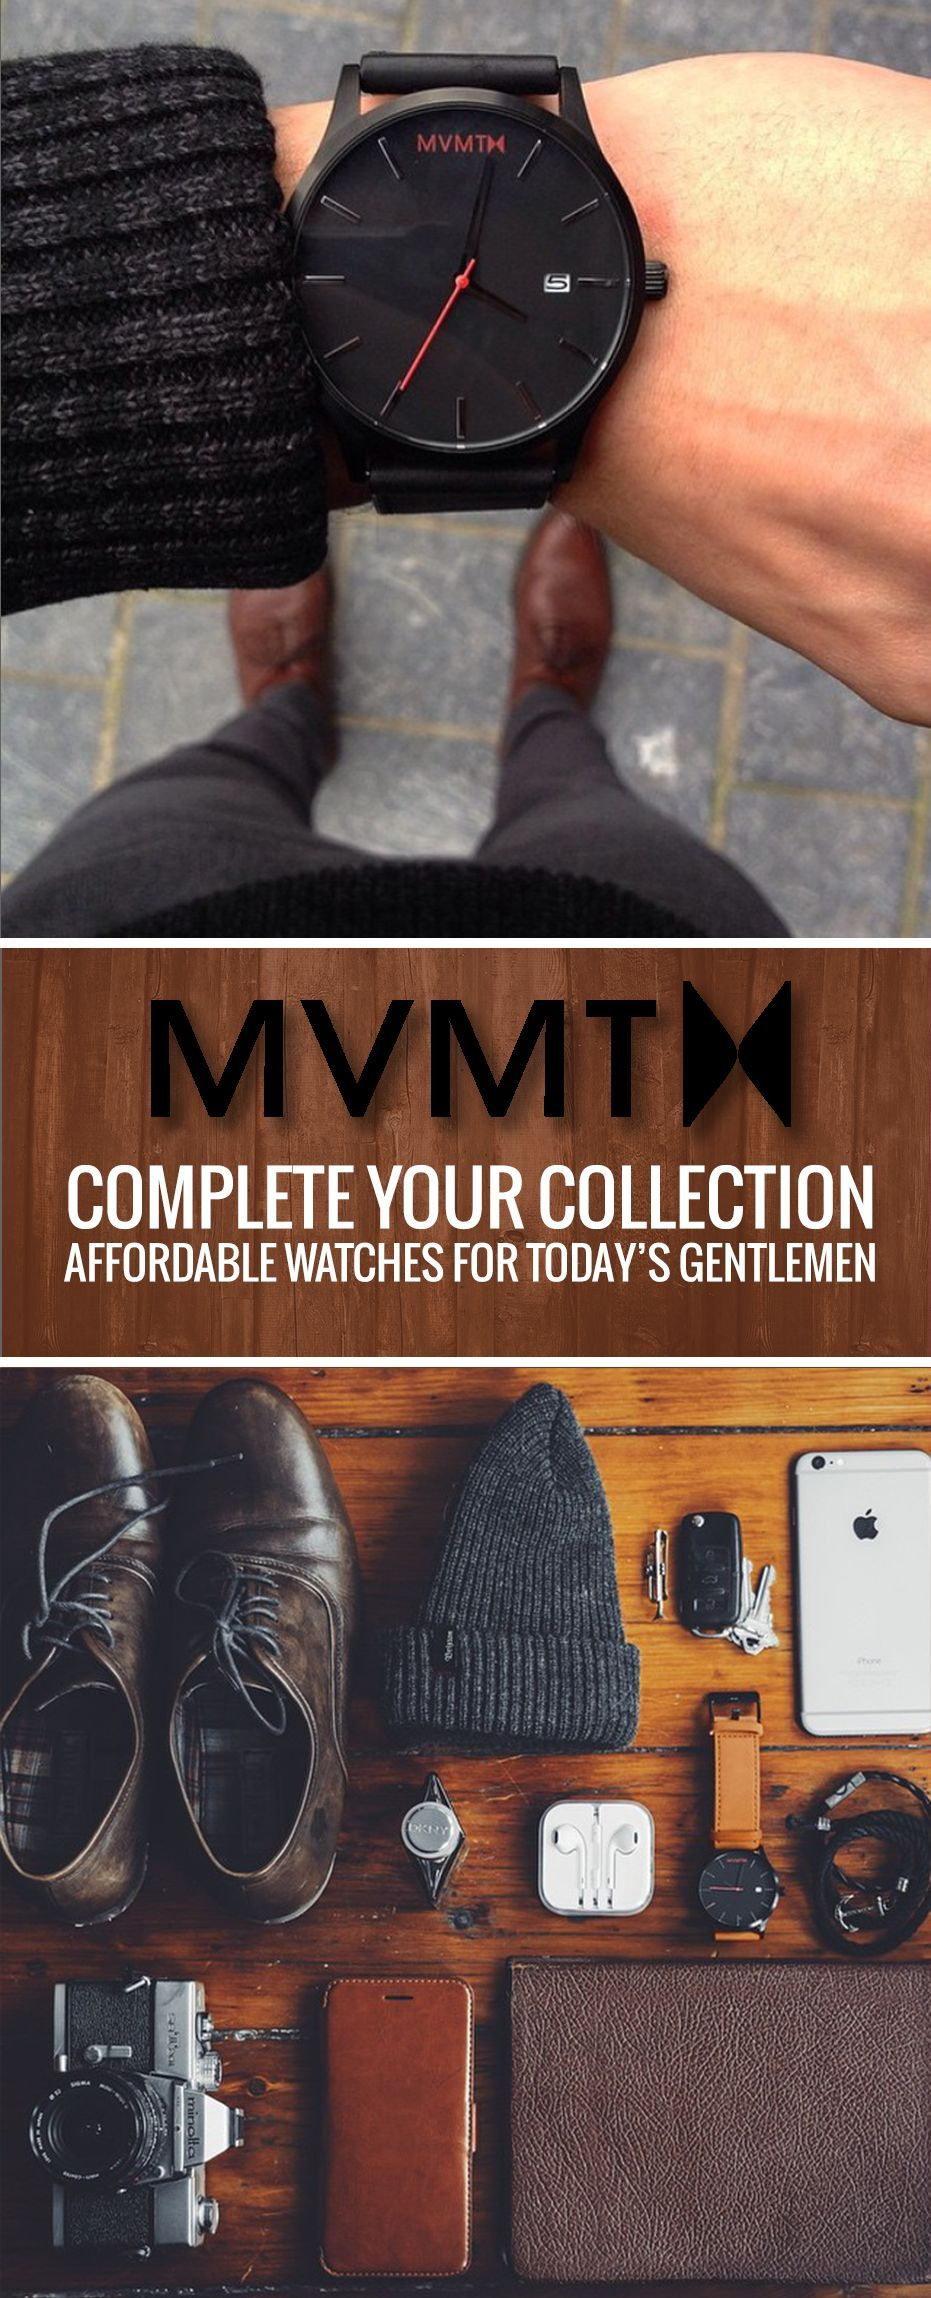 Looking for the perfect gift for the man in your life ...